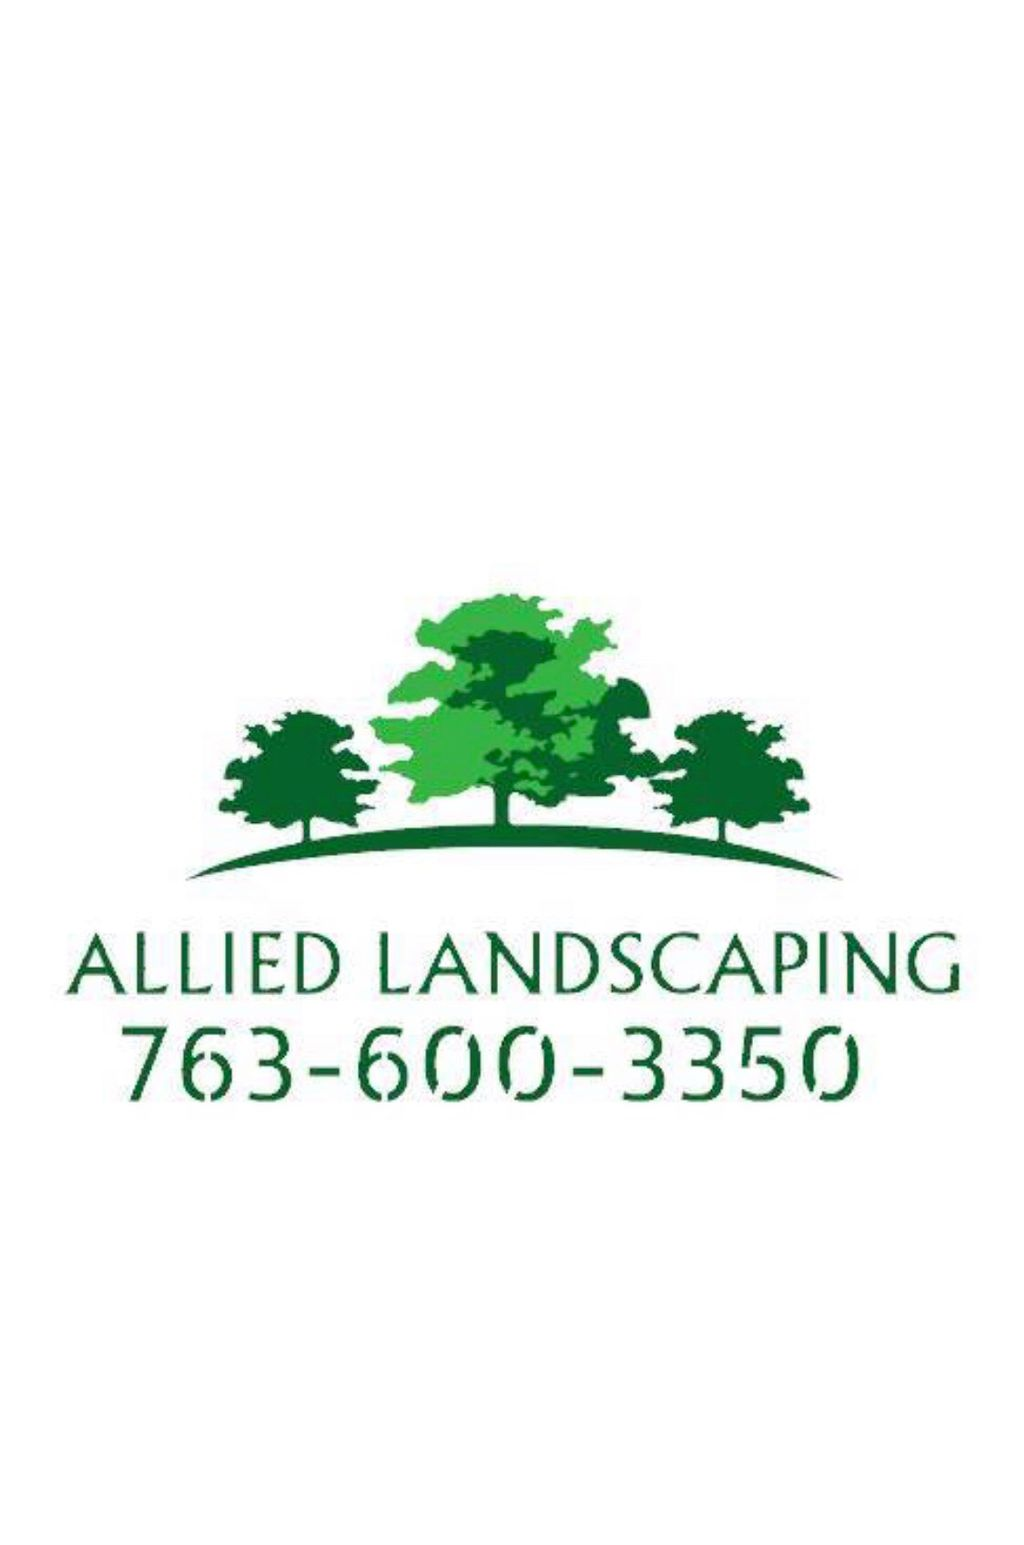 Allied landscaping Tree service